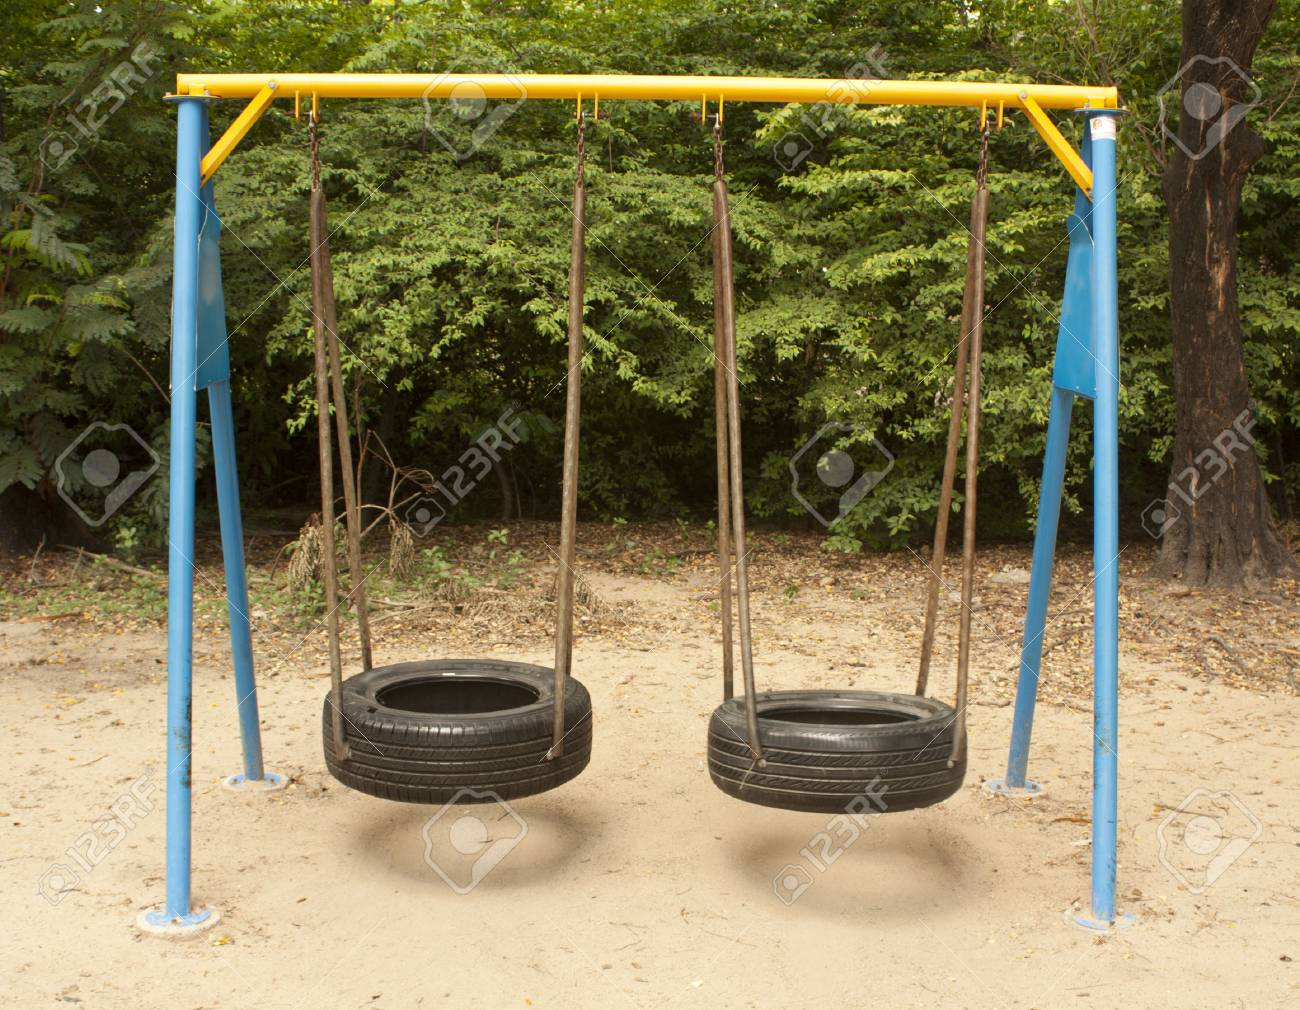 Swing Made Of Tire Car In Playground Stock Photo Picture And Royalty Free Image Image 31038942